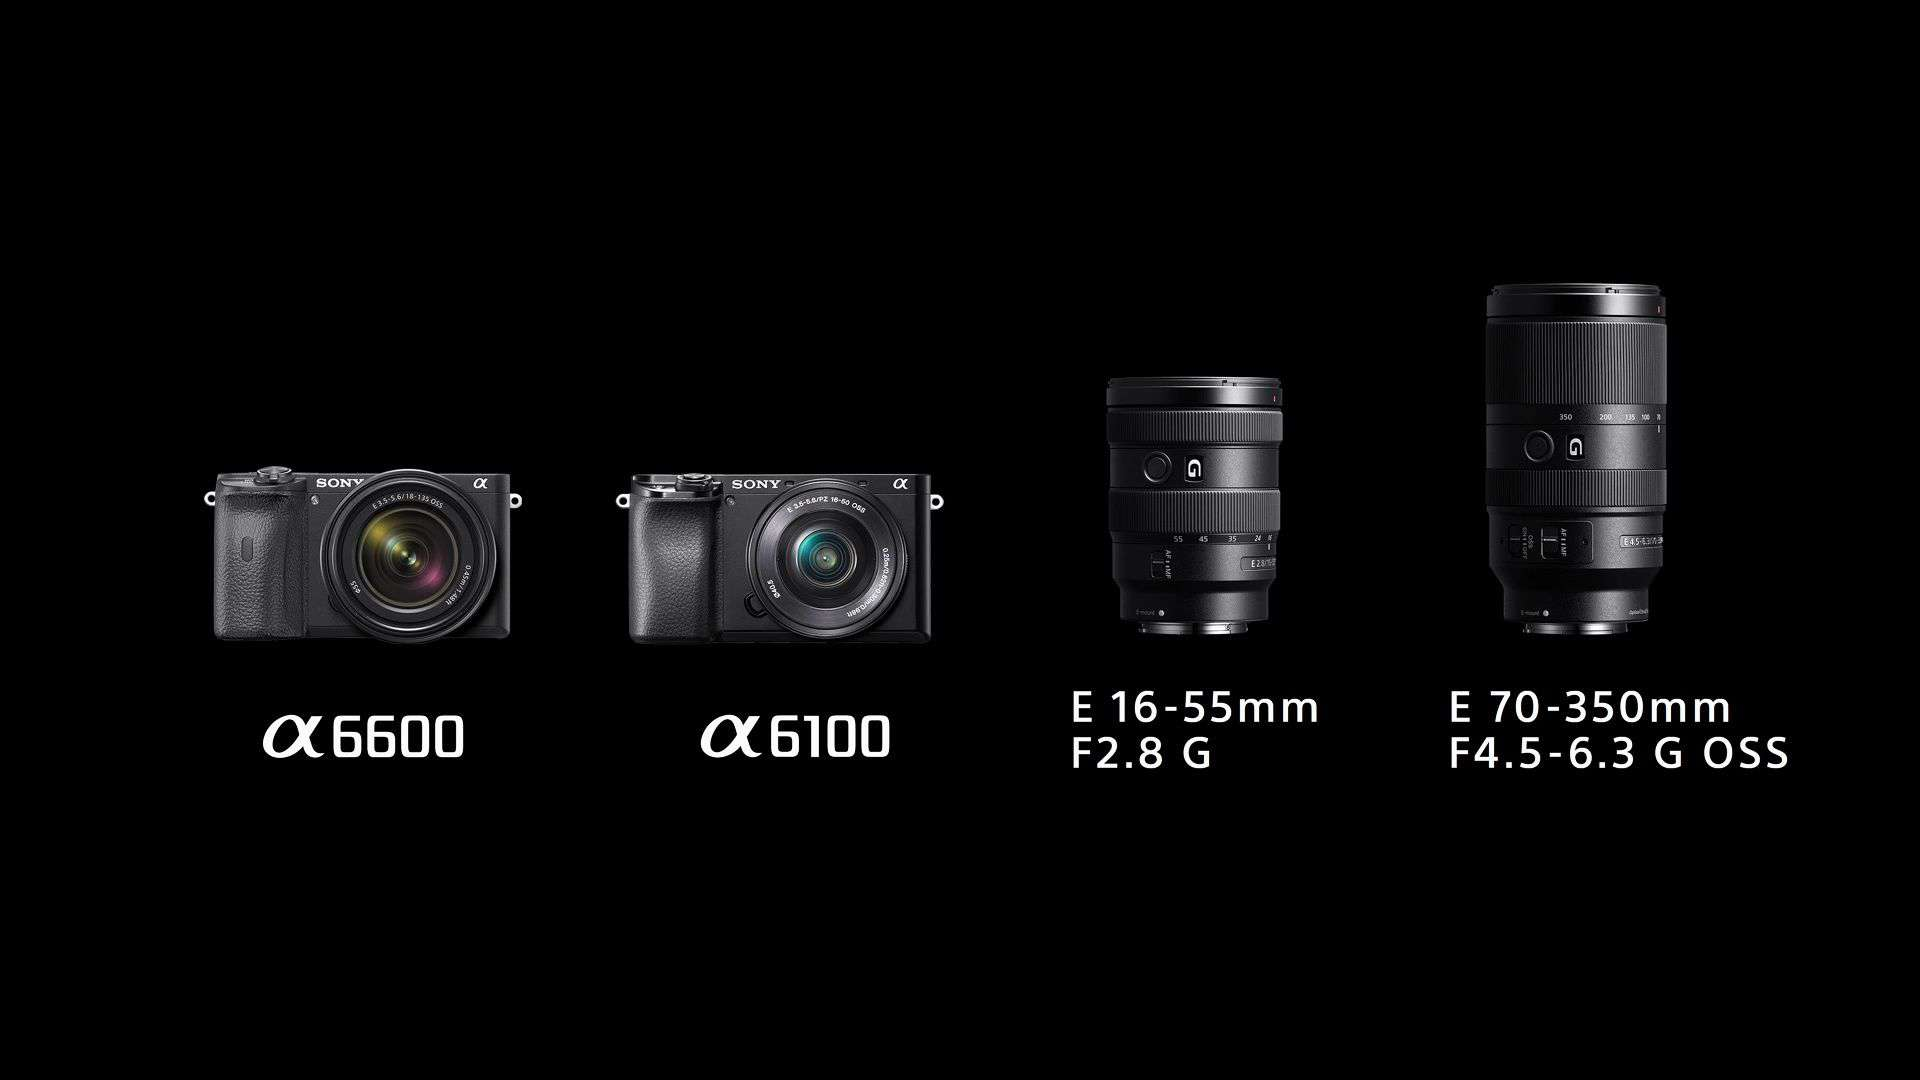 Sony unveils World's fastest A6600 and A6100 mirrorless cameras